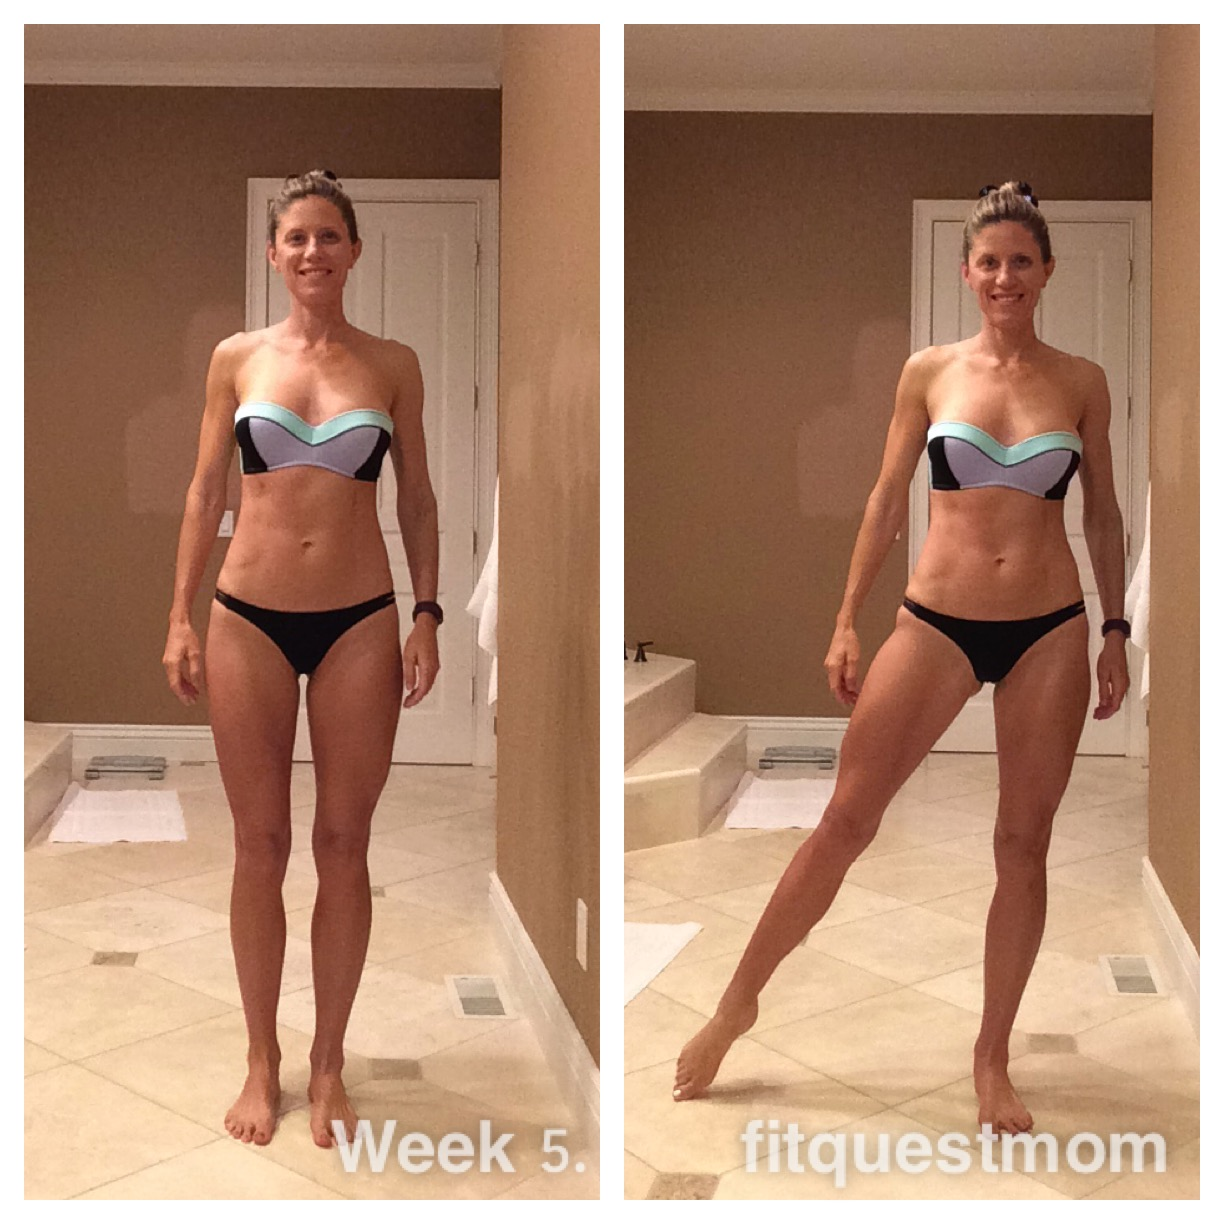 Day 36 FitQuestMom 8 weeks to 40 years old